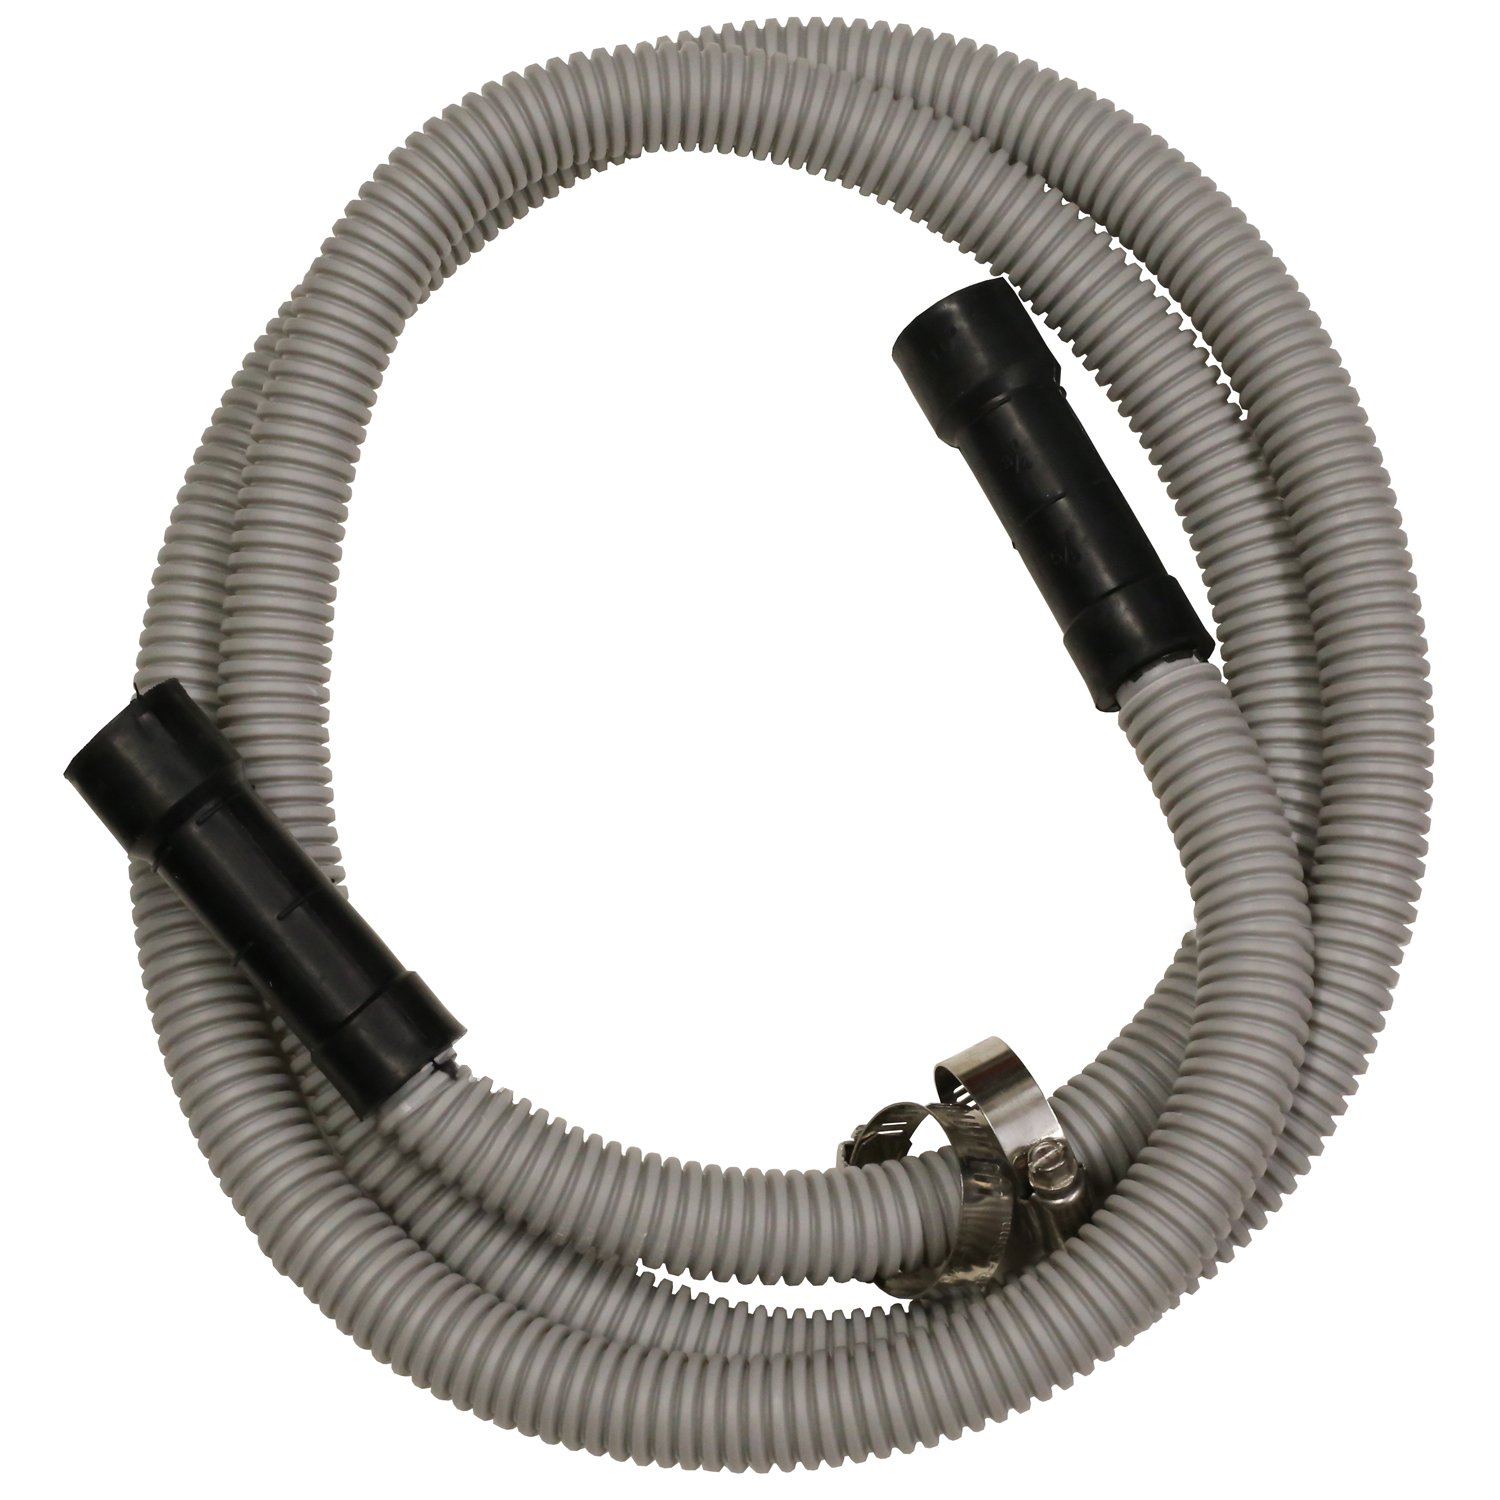 LASCO 16-1904 Dishwasher Drain Hose, Corrugated Flexible Poly Tubing, 5/8 ID x 7/8 OD, Universal Stepped Ends, 78-Inches Long by LASCO